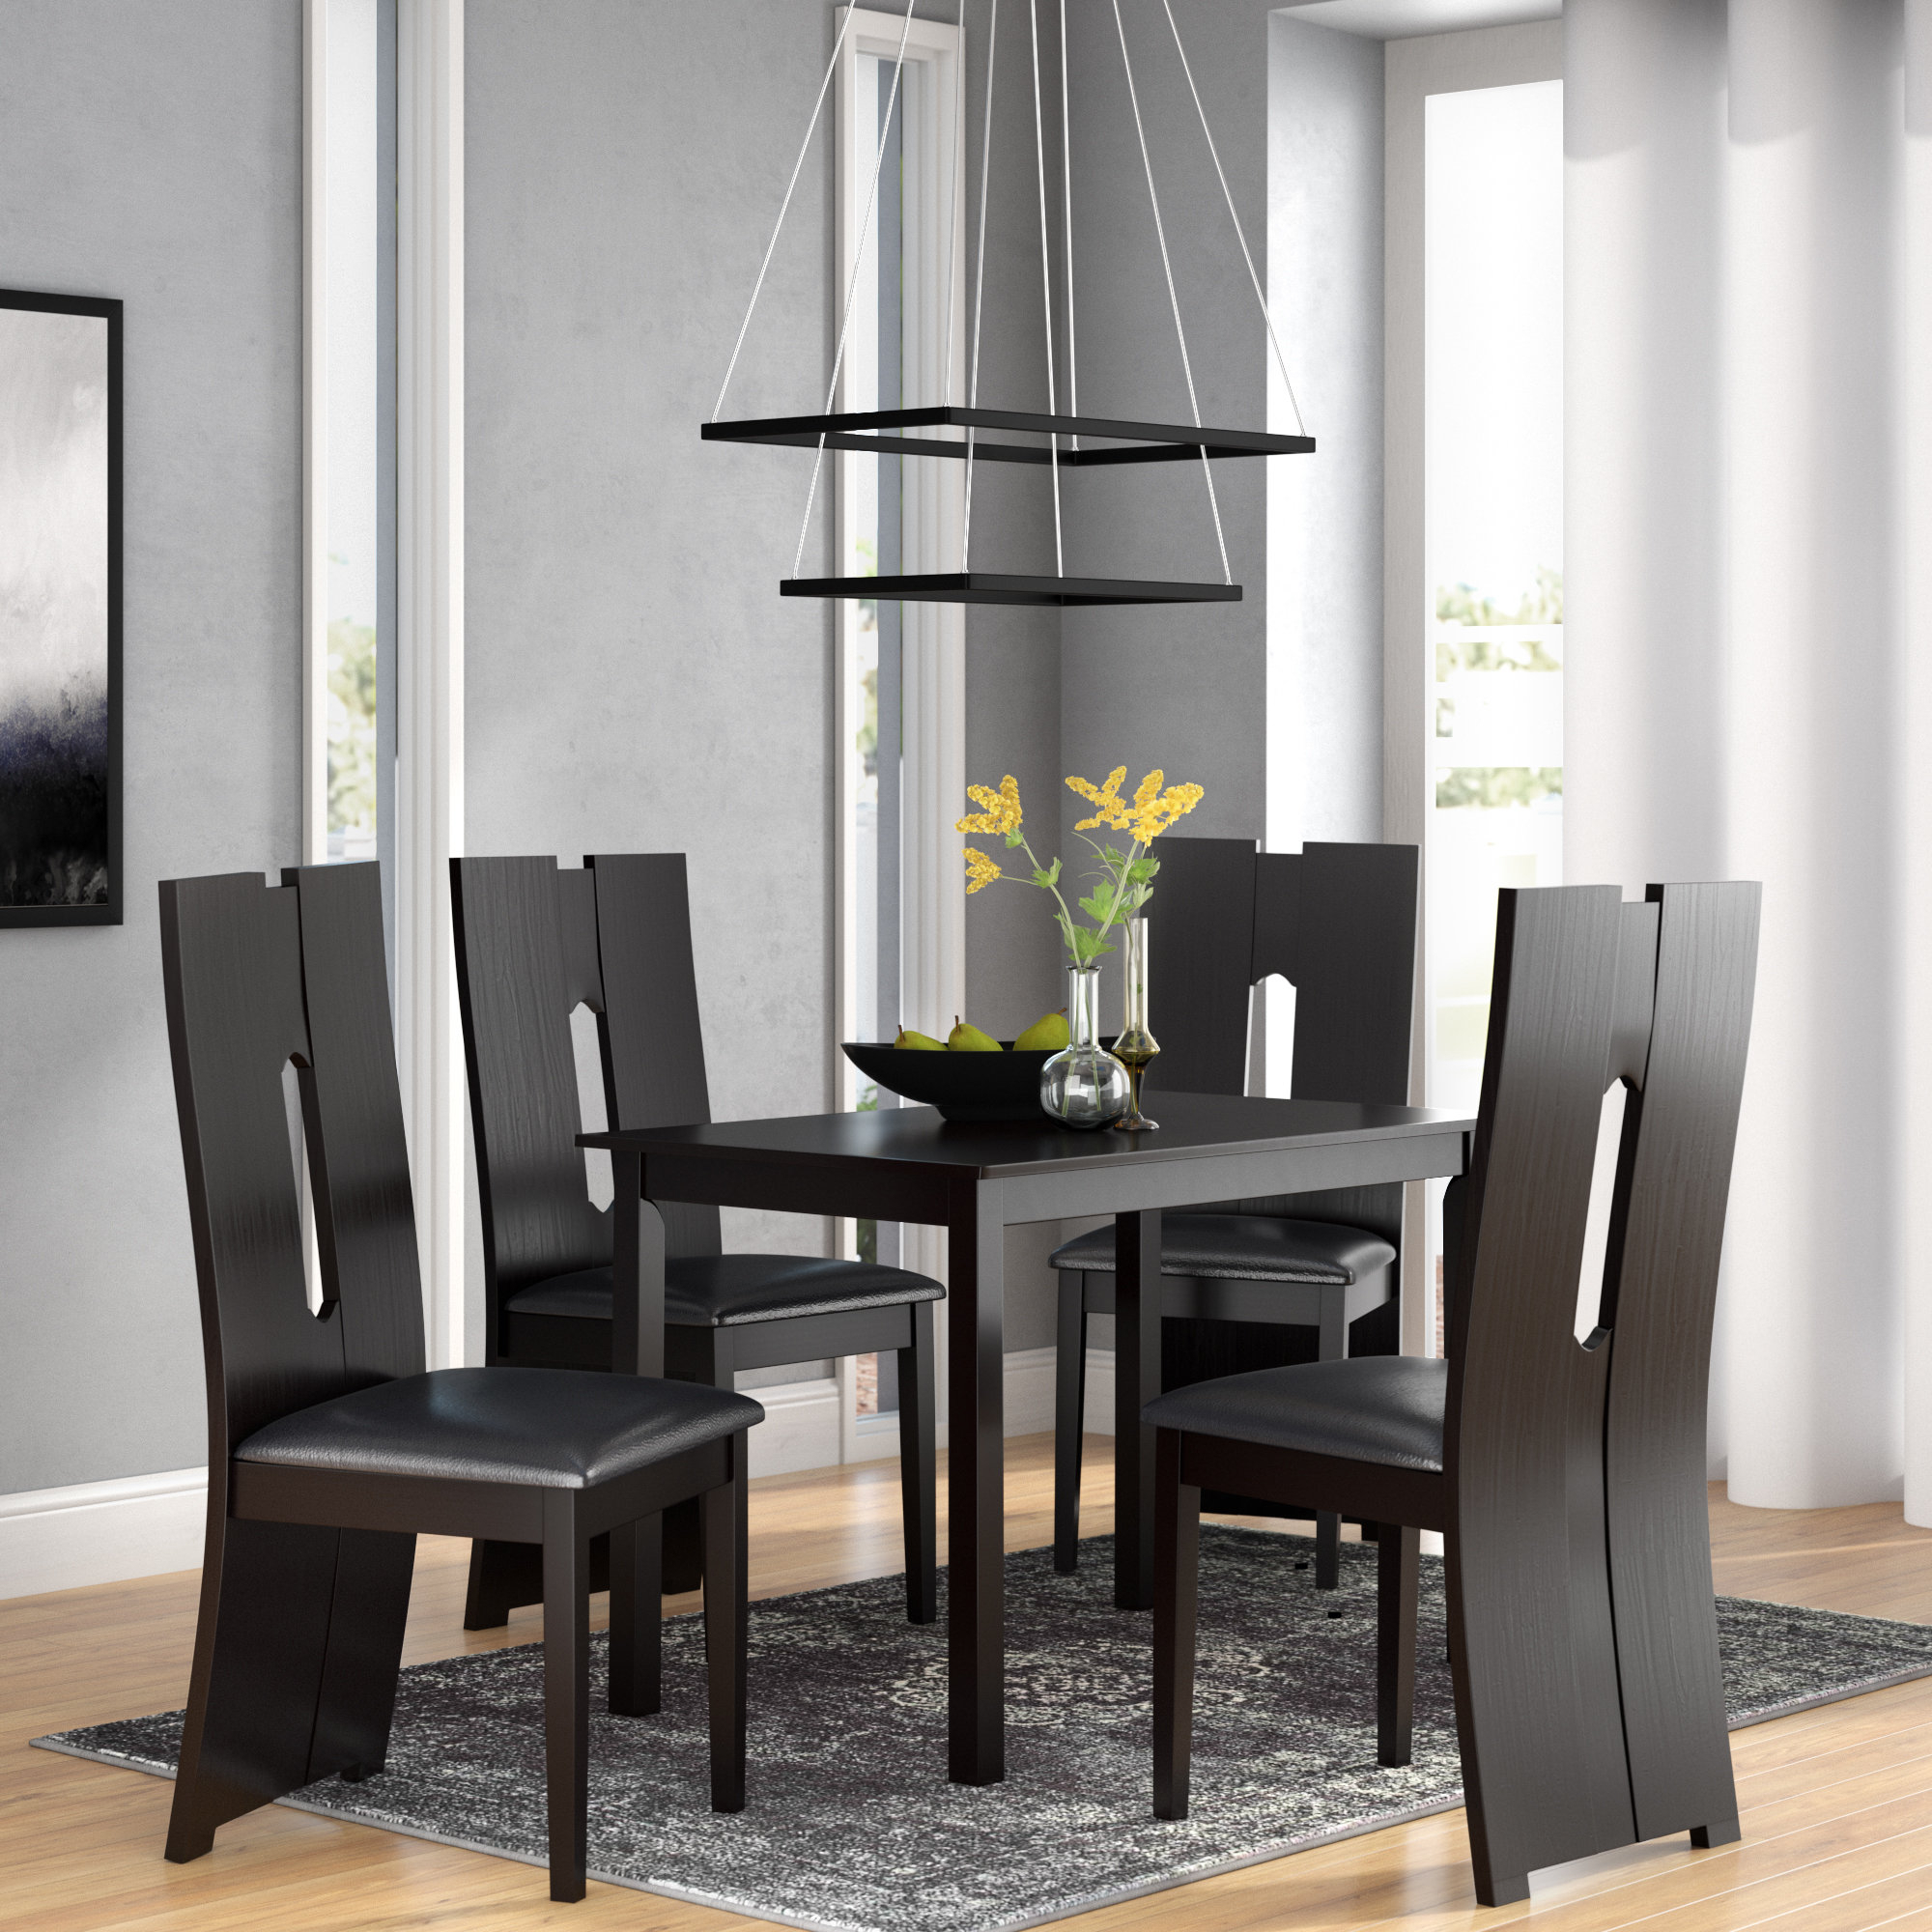 Onsted Modern And Contemporary 5 Piece Breakfast Nook Dining Set Intended For Most Up To Date 5 Piece Breakfast Nook Dining Sets (View 7 of 20)